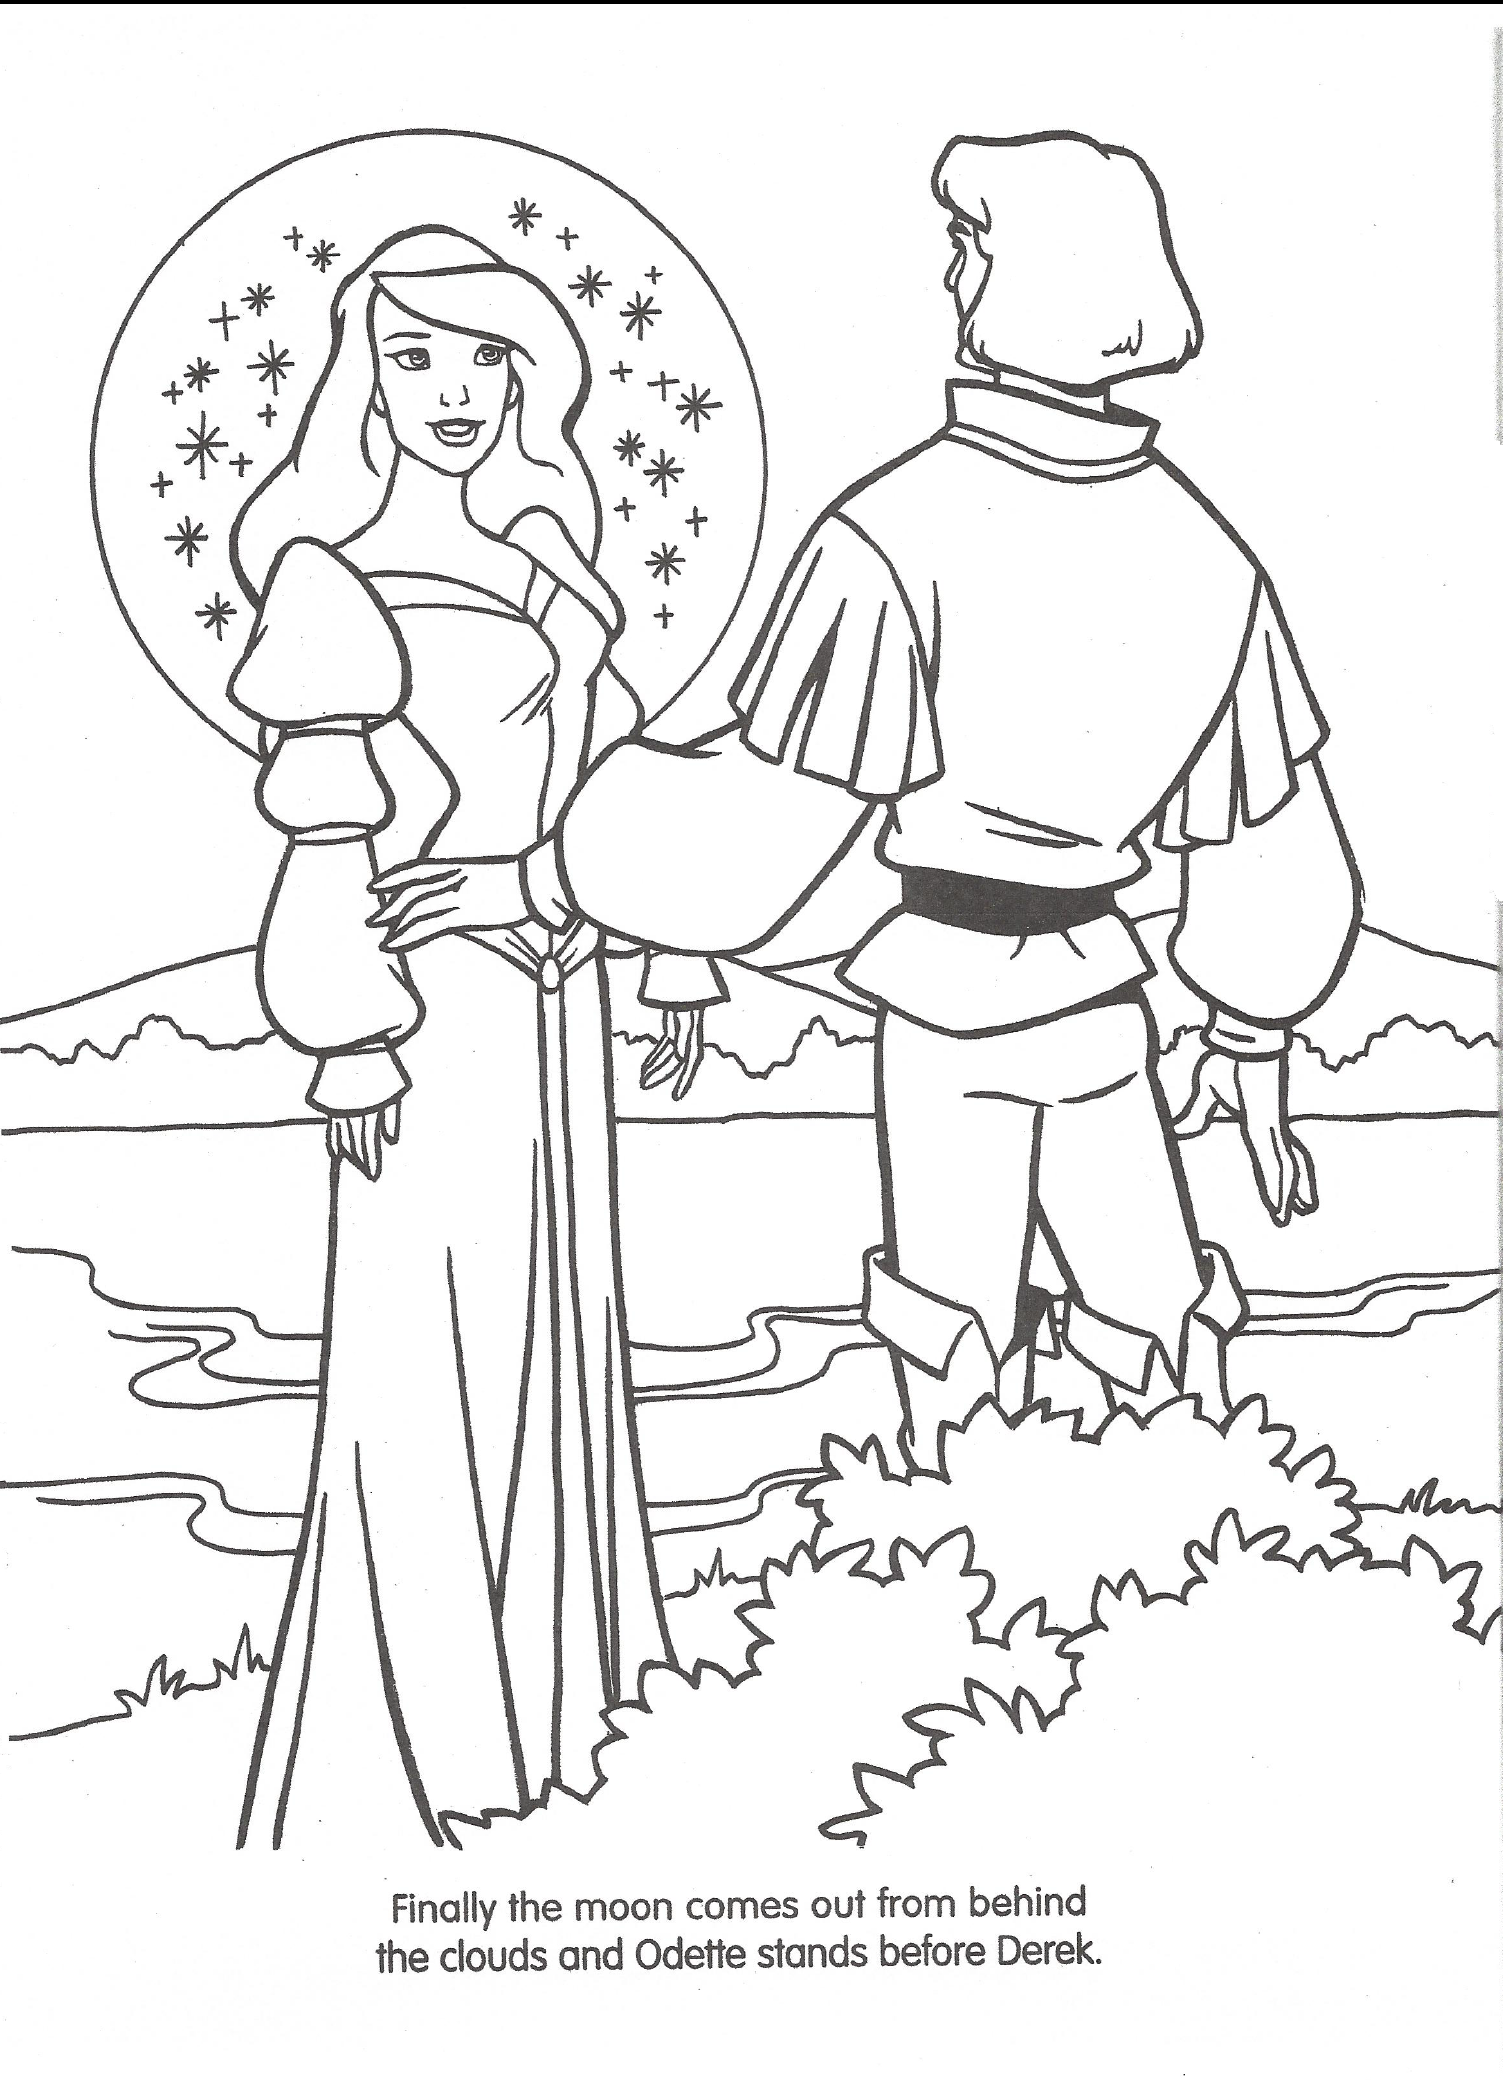 Swan princess coloring pages free - Image Swan Princess Official Coloring Page 35 Png Richard Rich Wiki Fandom Powered By Wikia